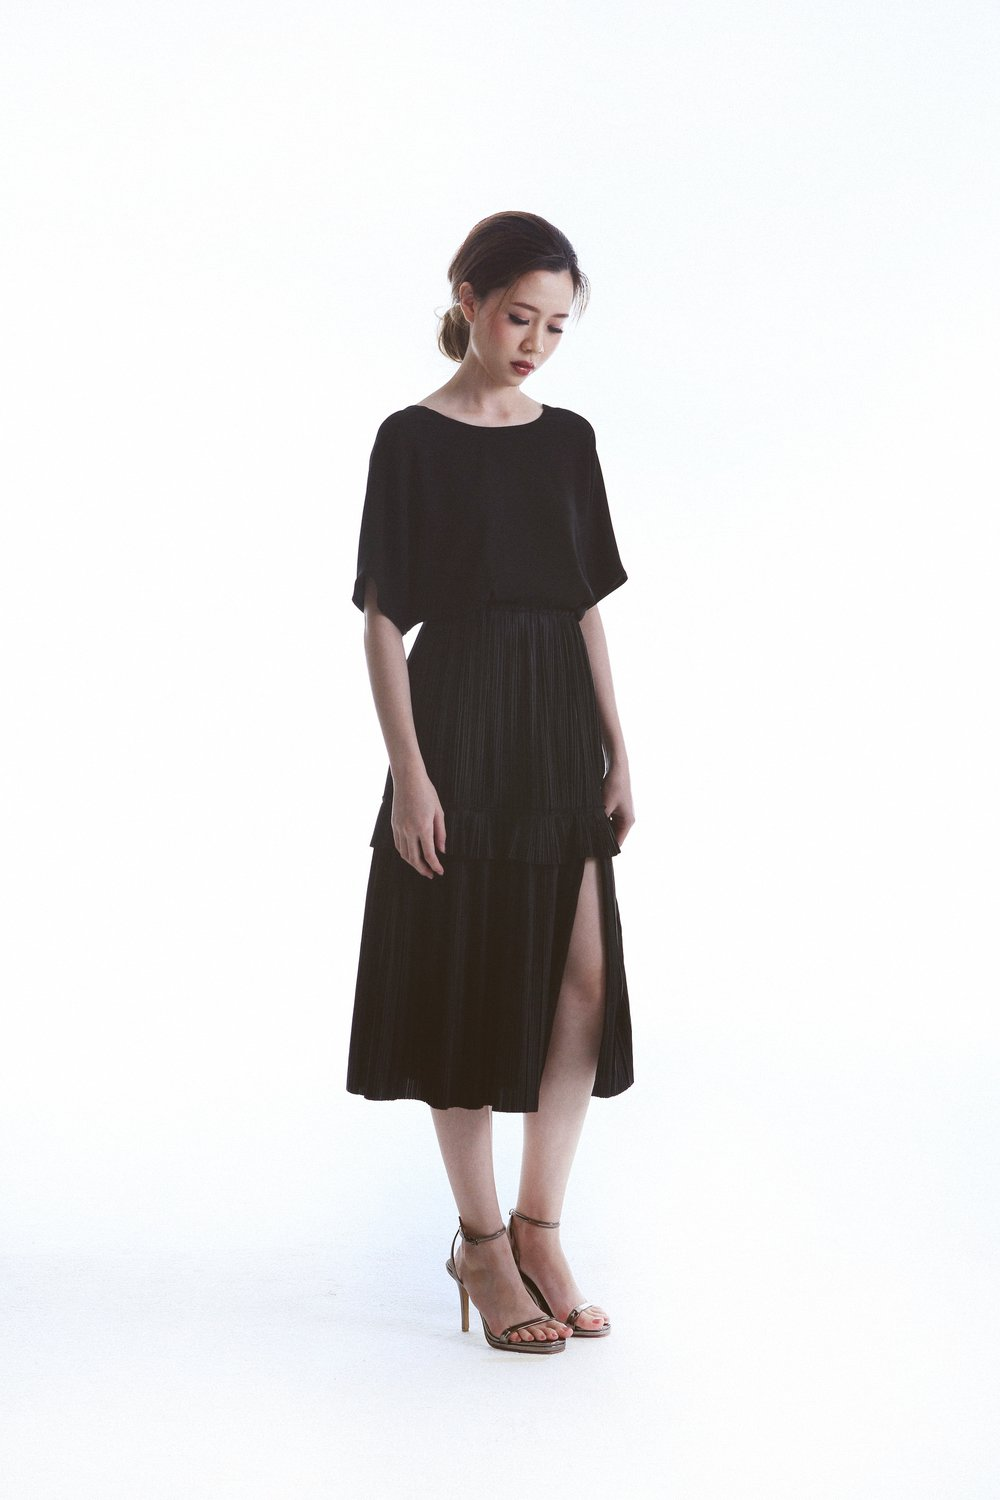 Saint Top worn with Hope Straight Skirt